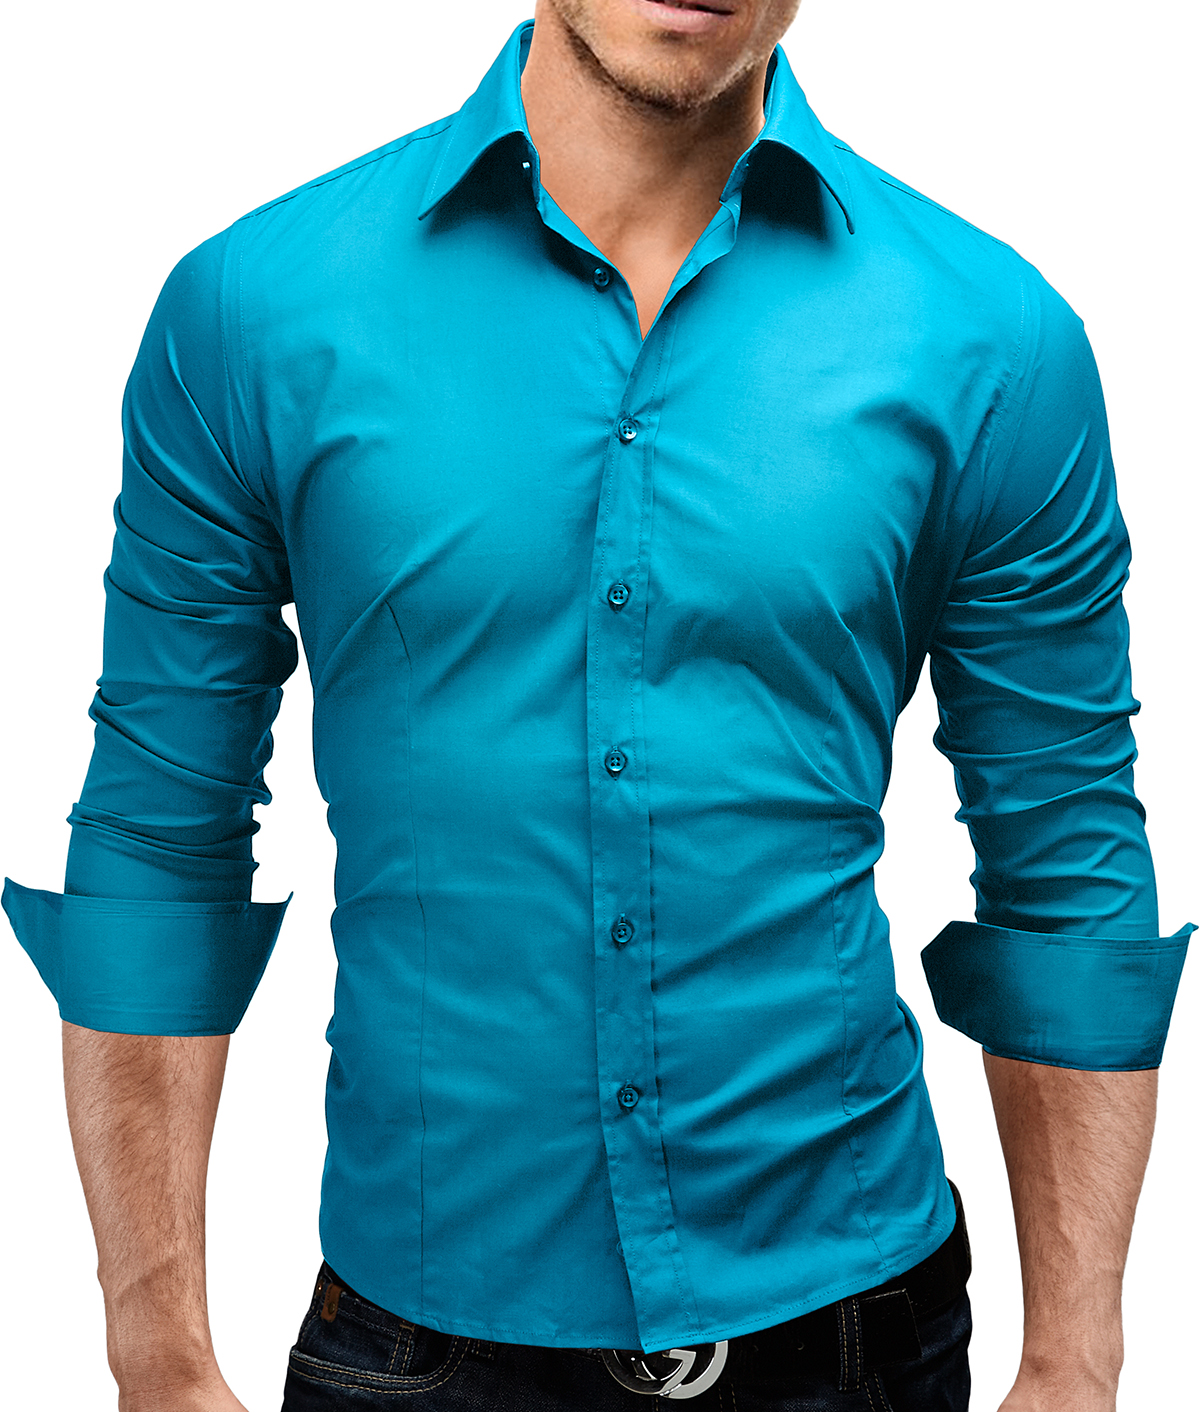 merish men 39 s shirt 6 model s xxl slim fit new t shirt polo style shirt wow ebay. Black Bedroom Furniture Sets. Home Design Ideas